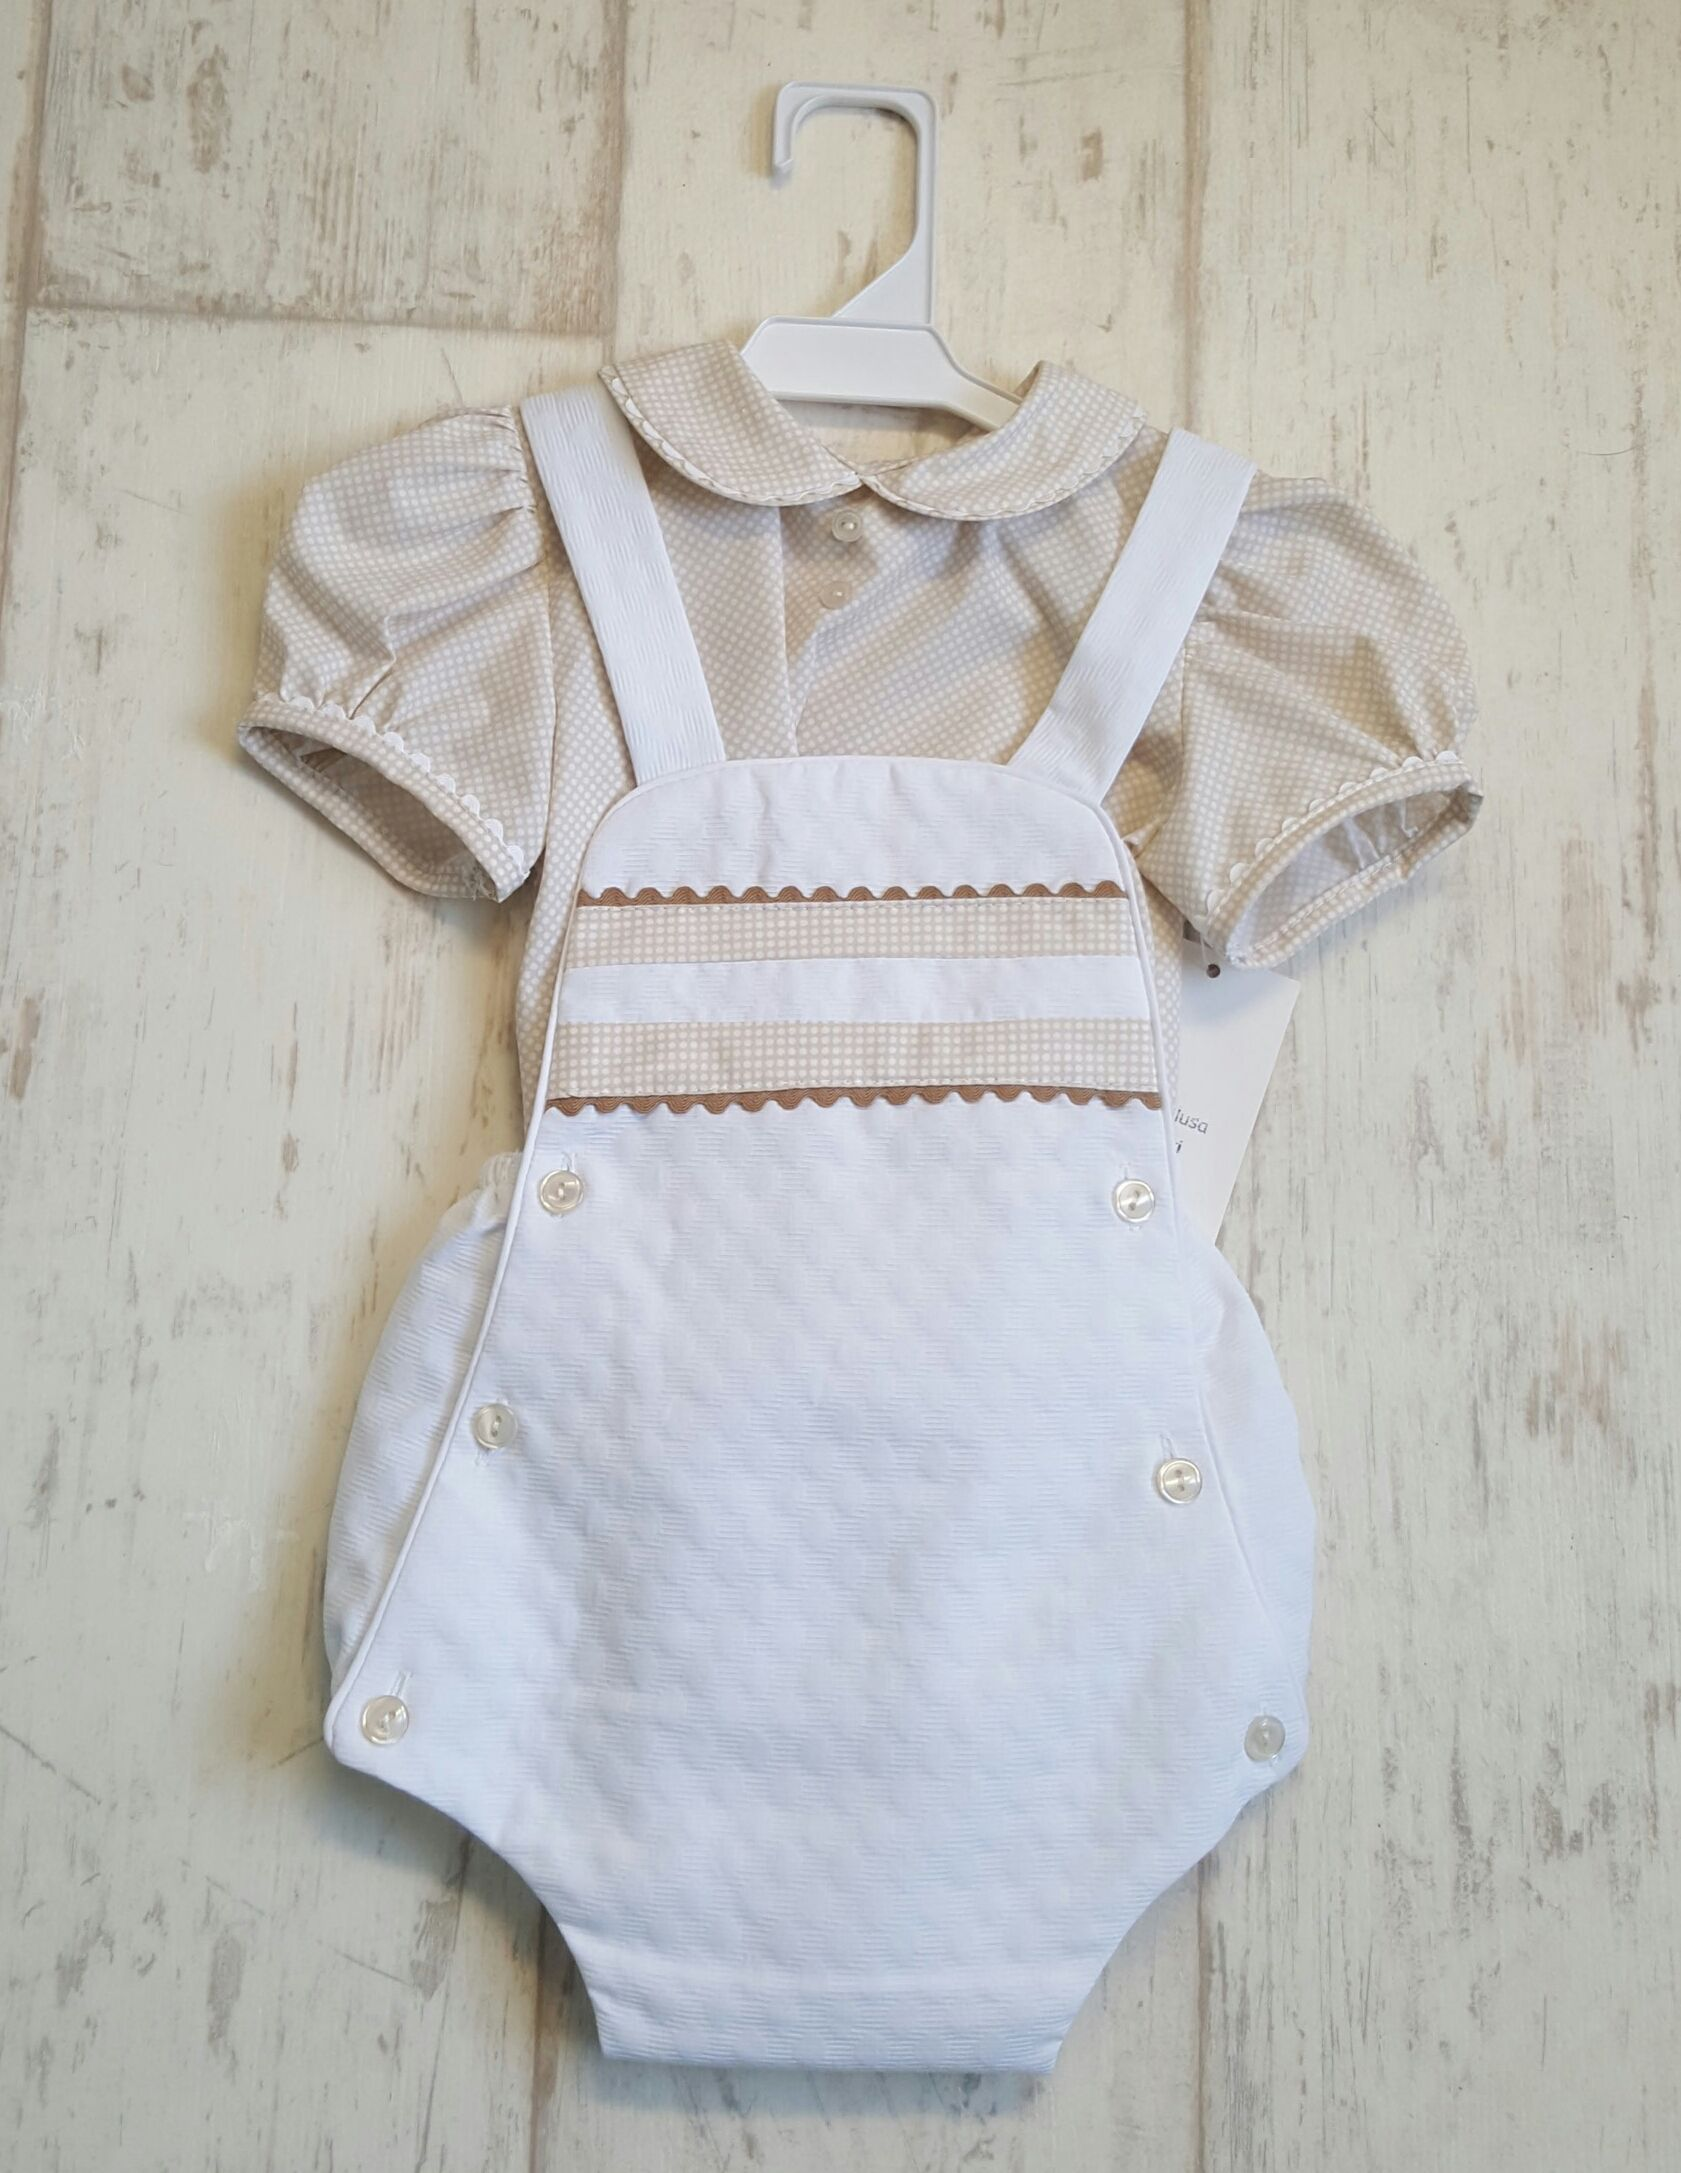 Traditional Boys Gold Shirt Spanish Romper romper spanishclothing